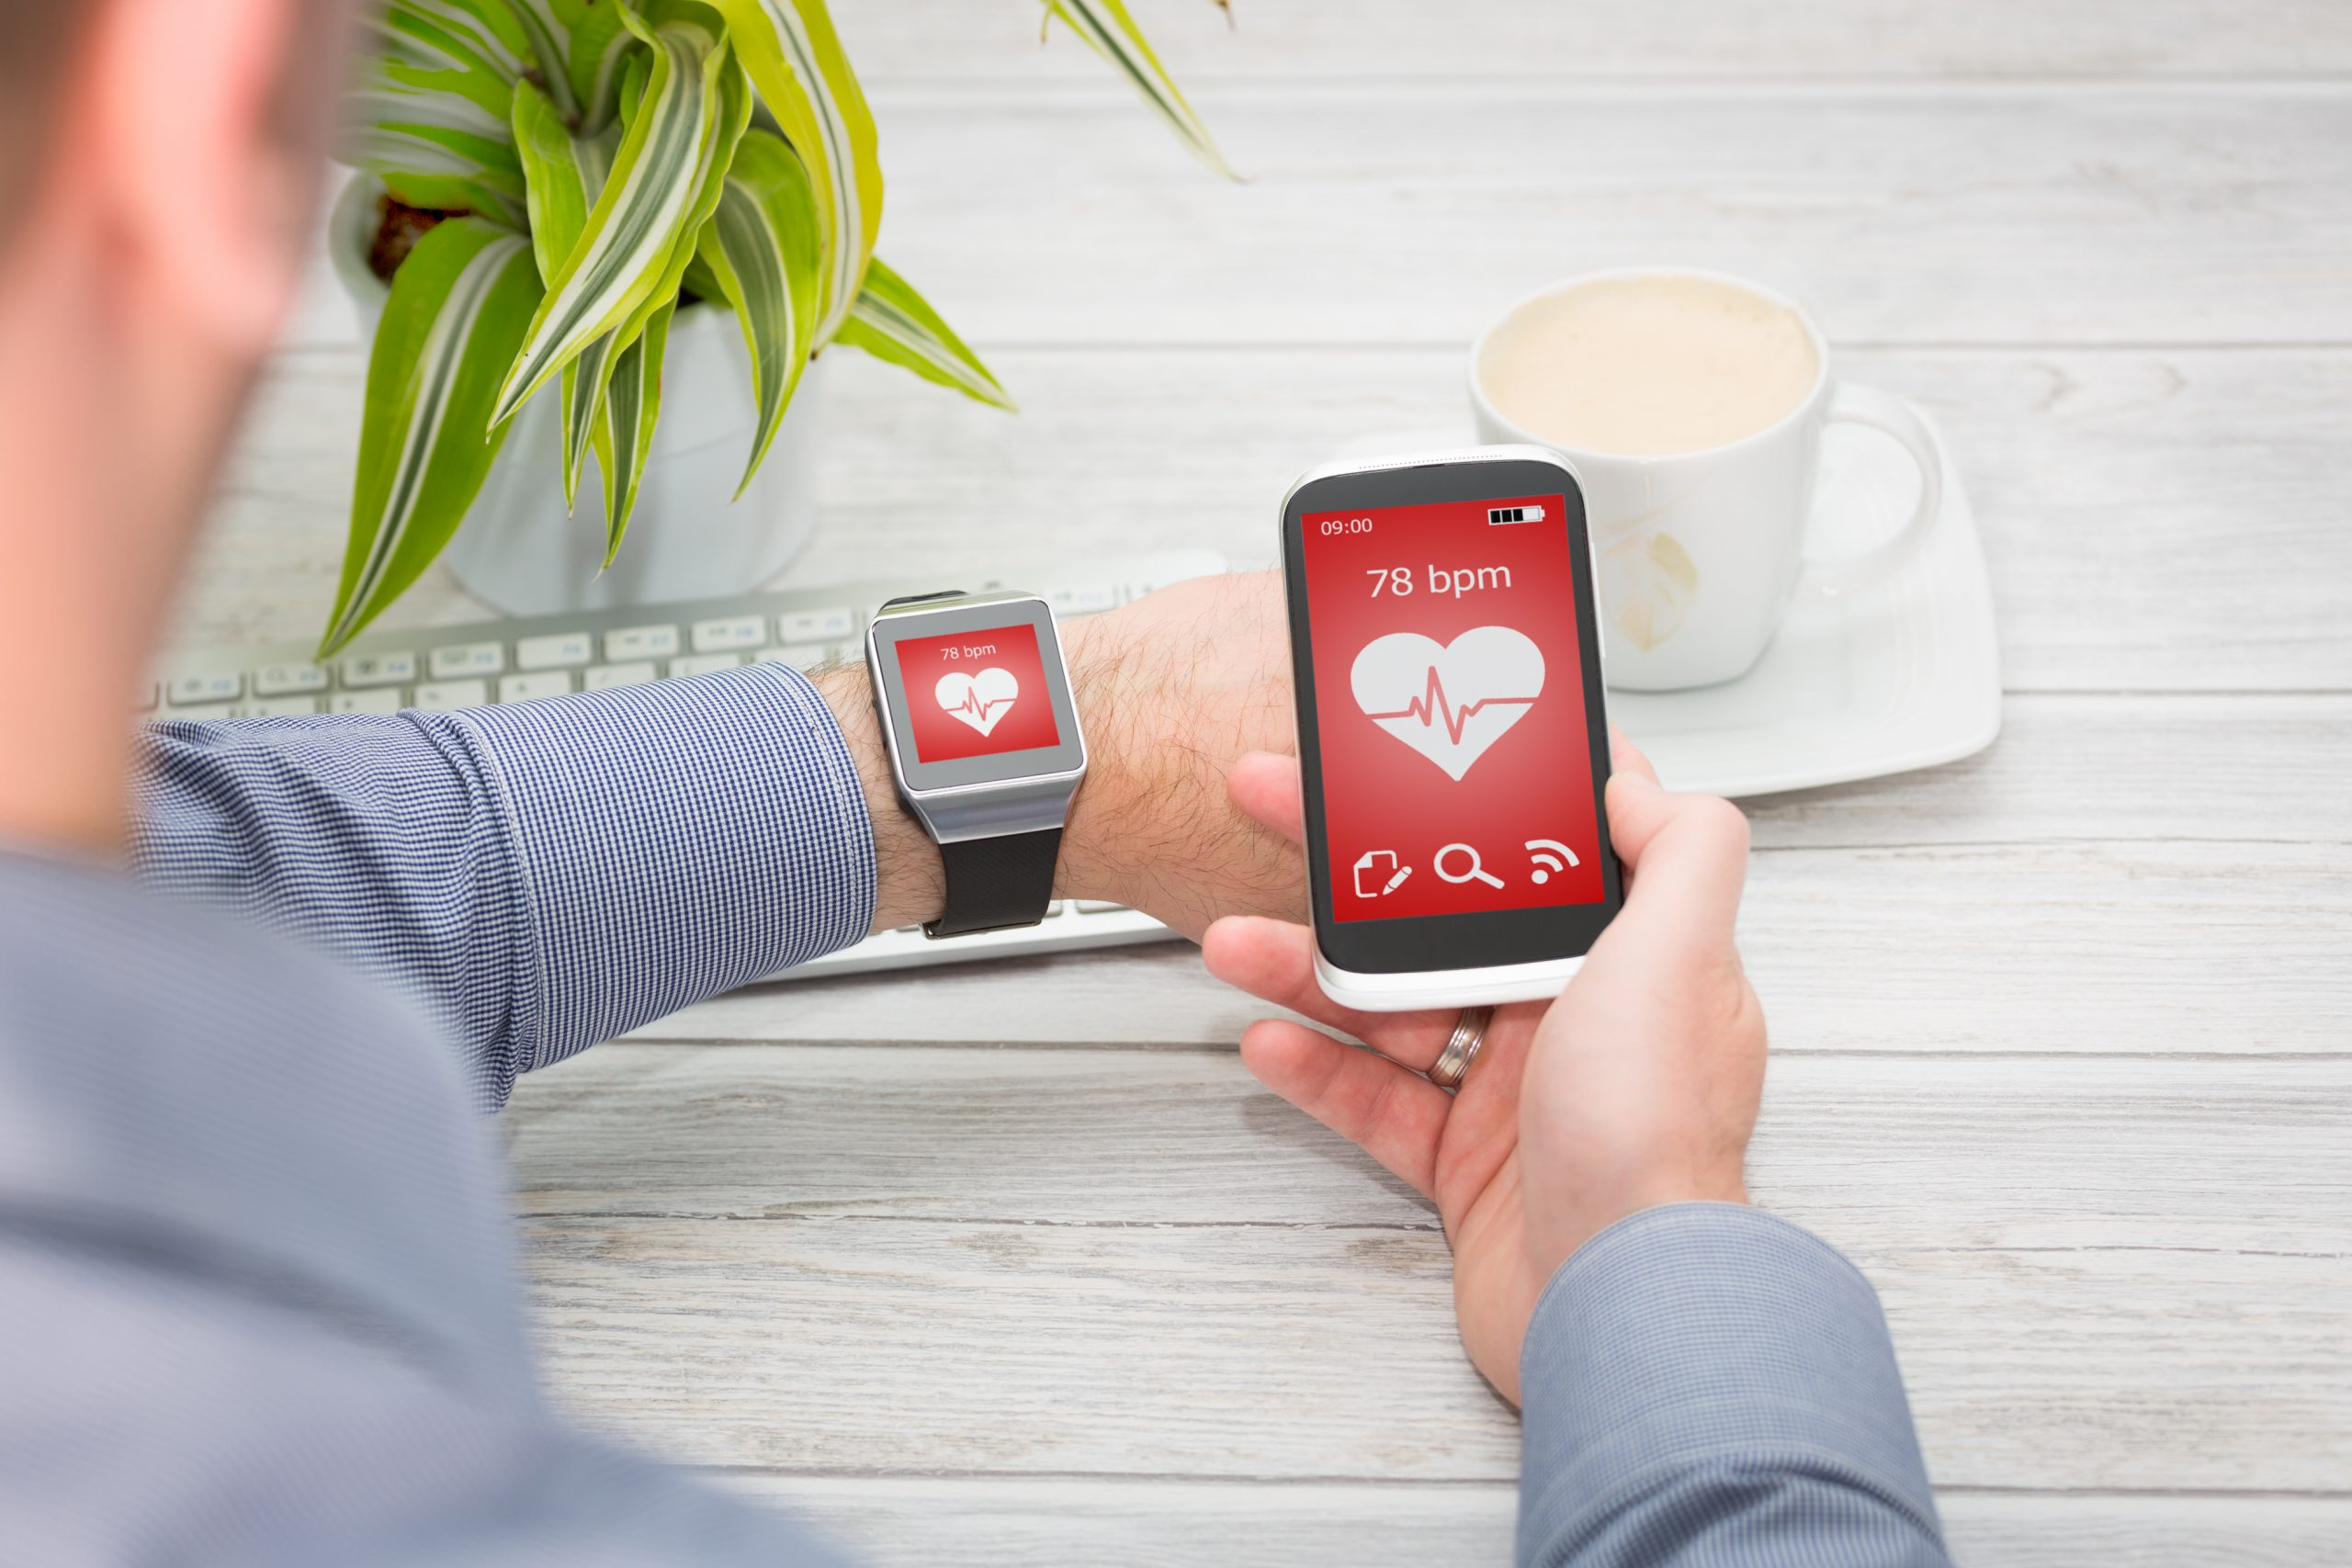 How to Monitor Your Health Using a Smartphone